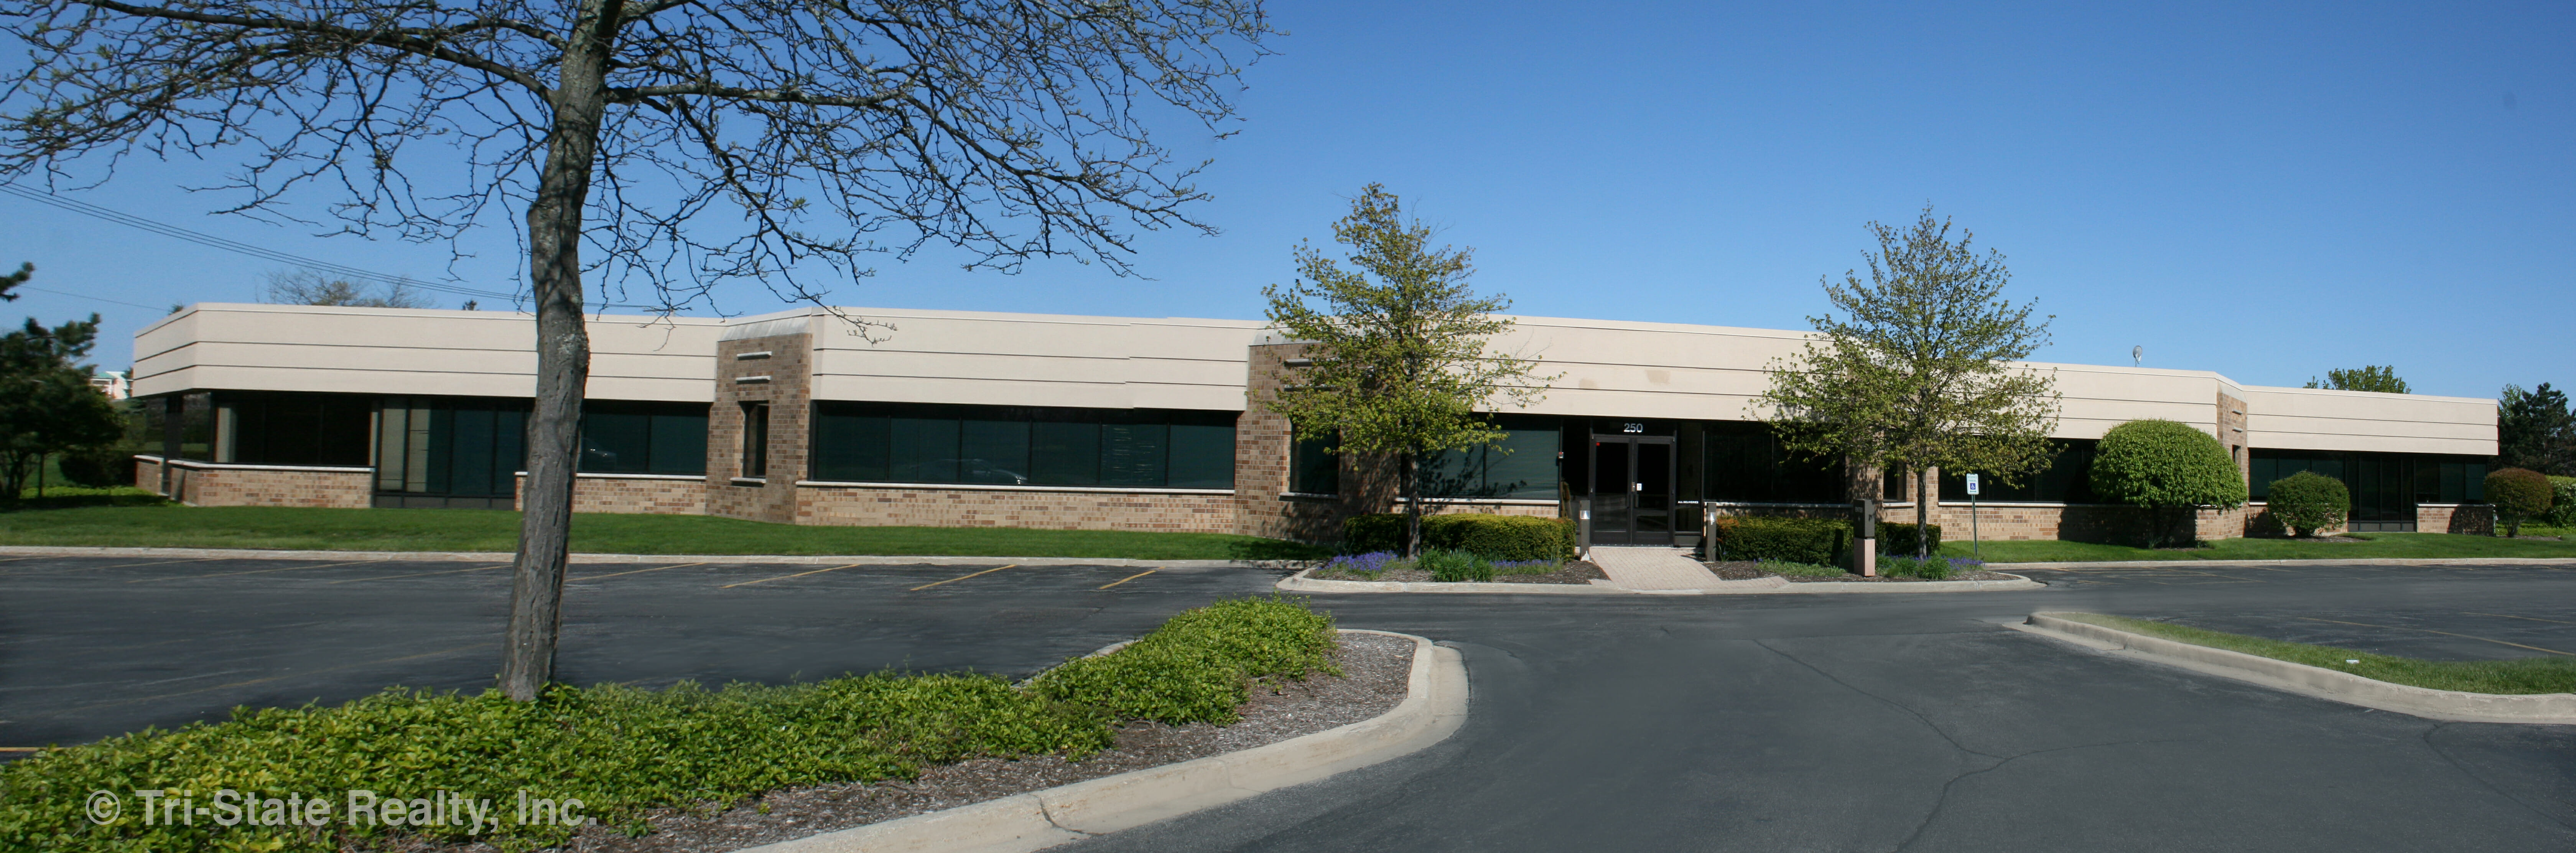 1375 Tri State Parkway, Suite 100, Crown Corporate Center